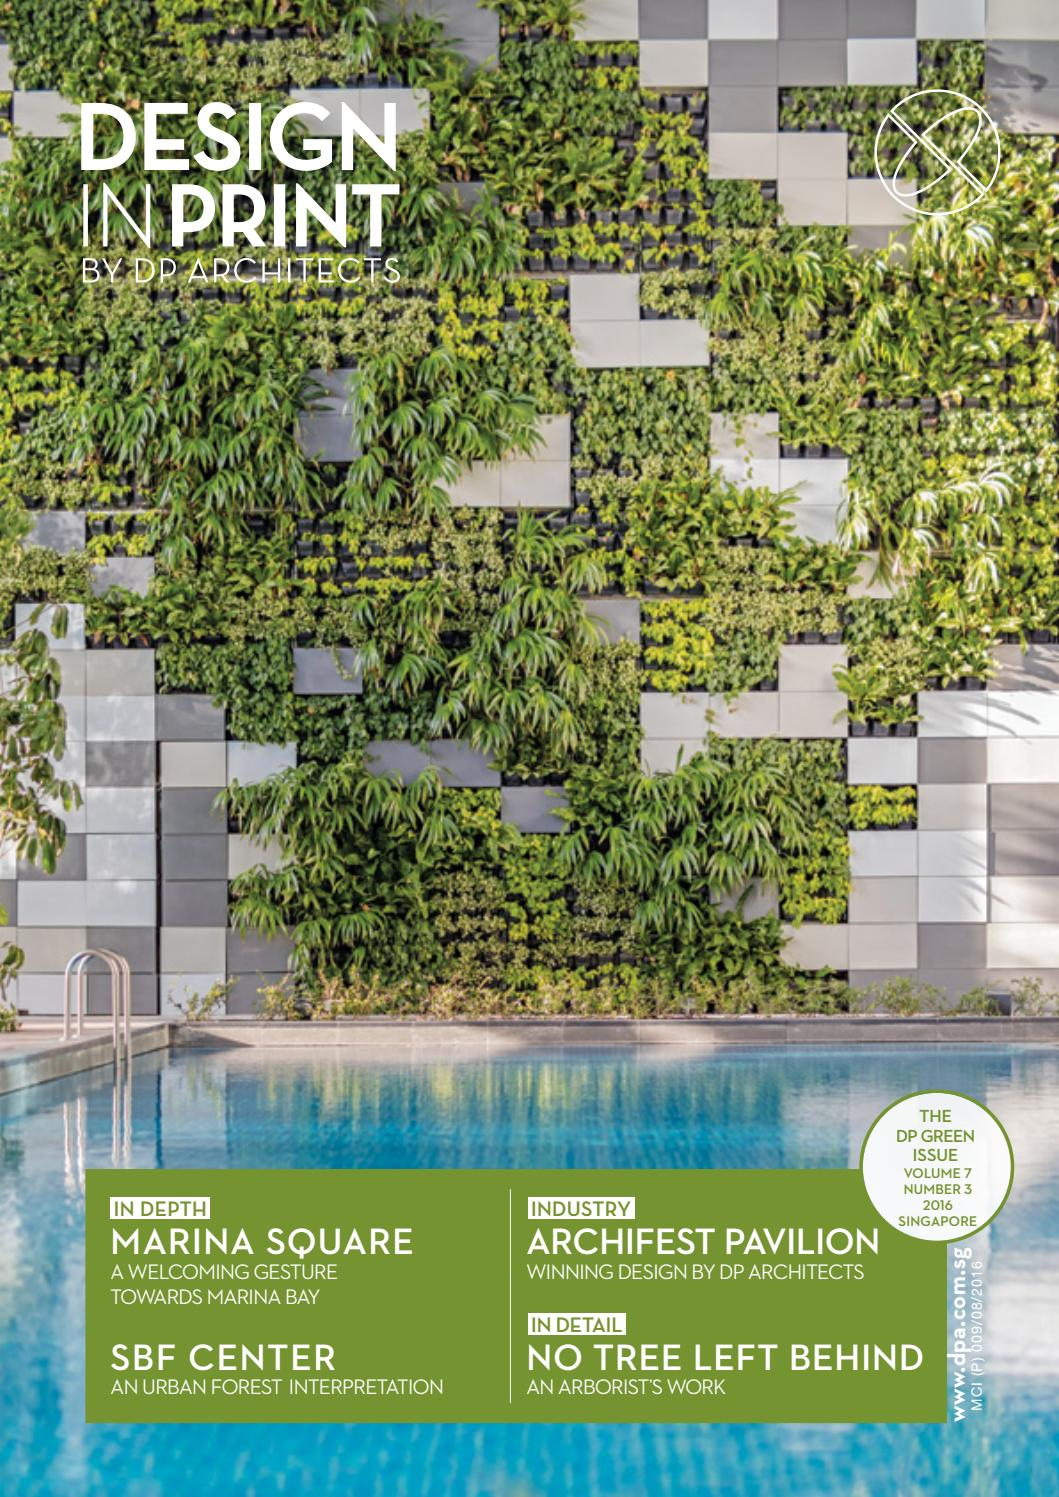 Design In Print 7 3 - The DP Green Issue 2016 by DPArchitects - issuu